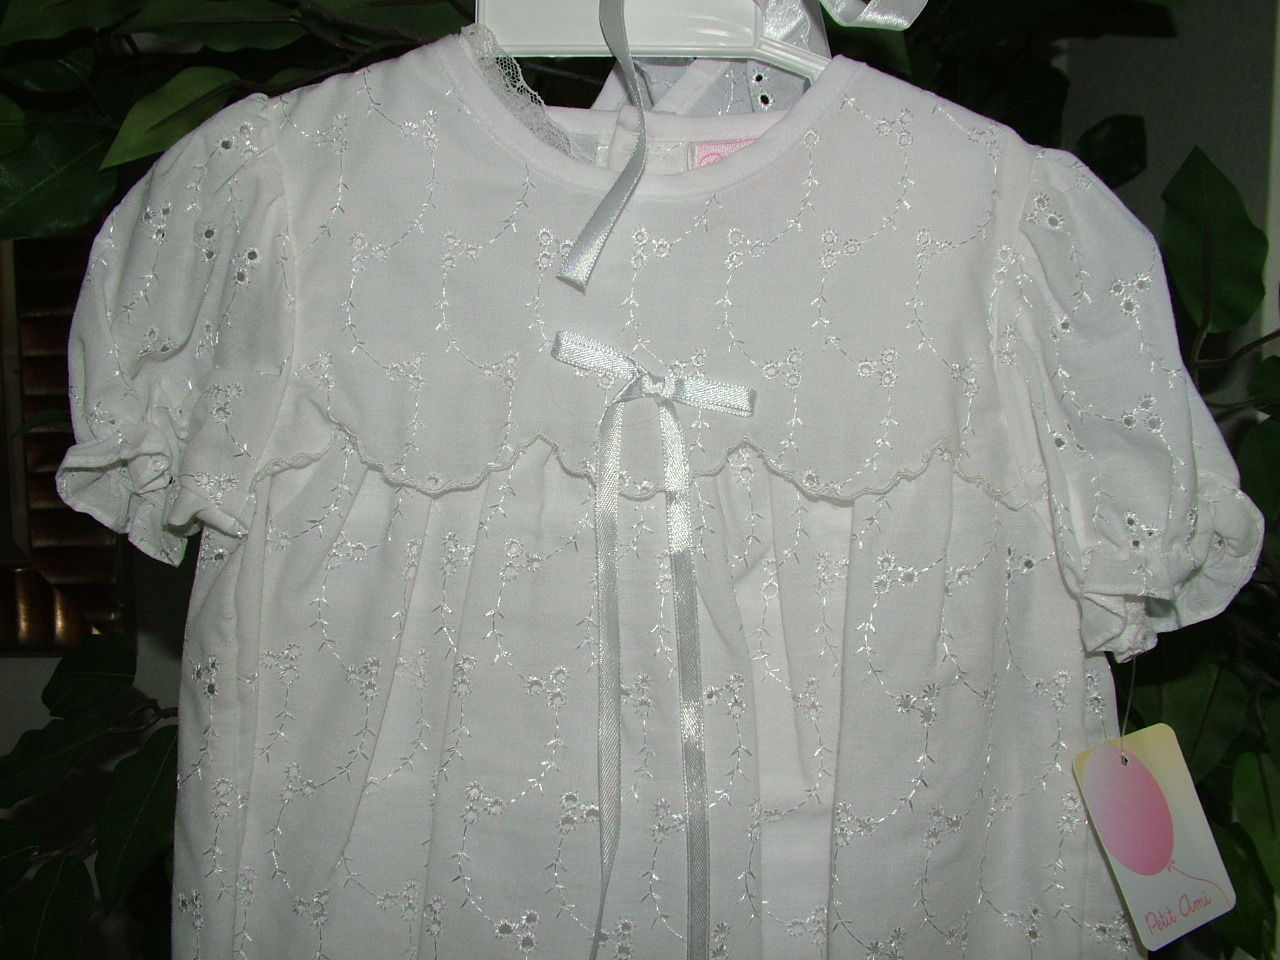 Image 2 of Precious Sweet Petit Ami Lined Cotton Eyelet Christening Scalloped Yoke Hat Set